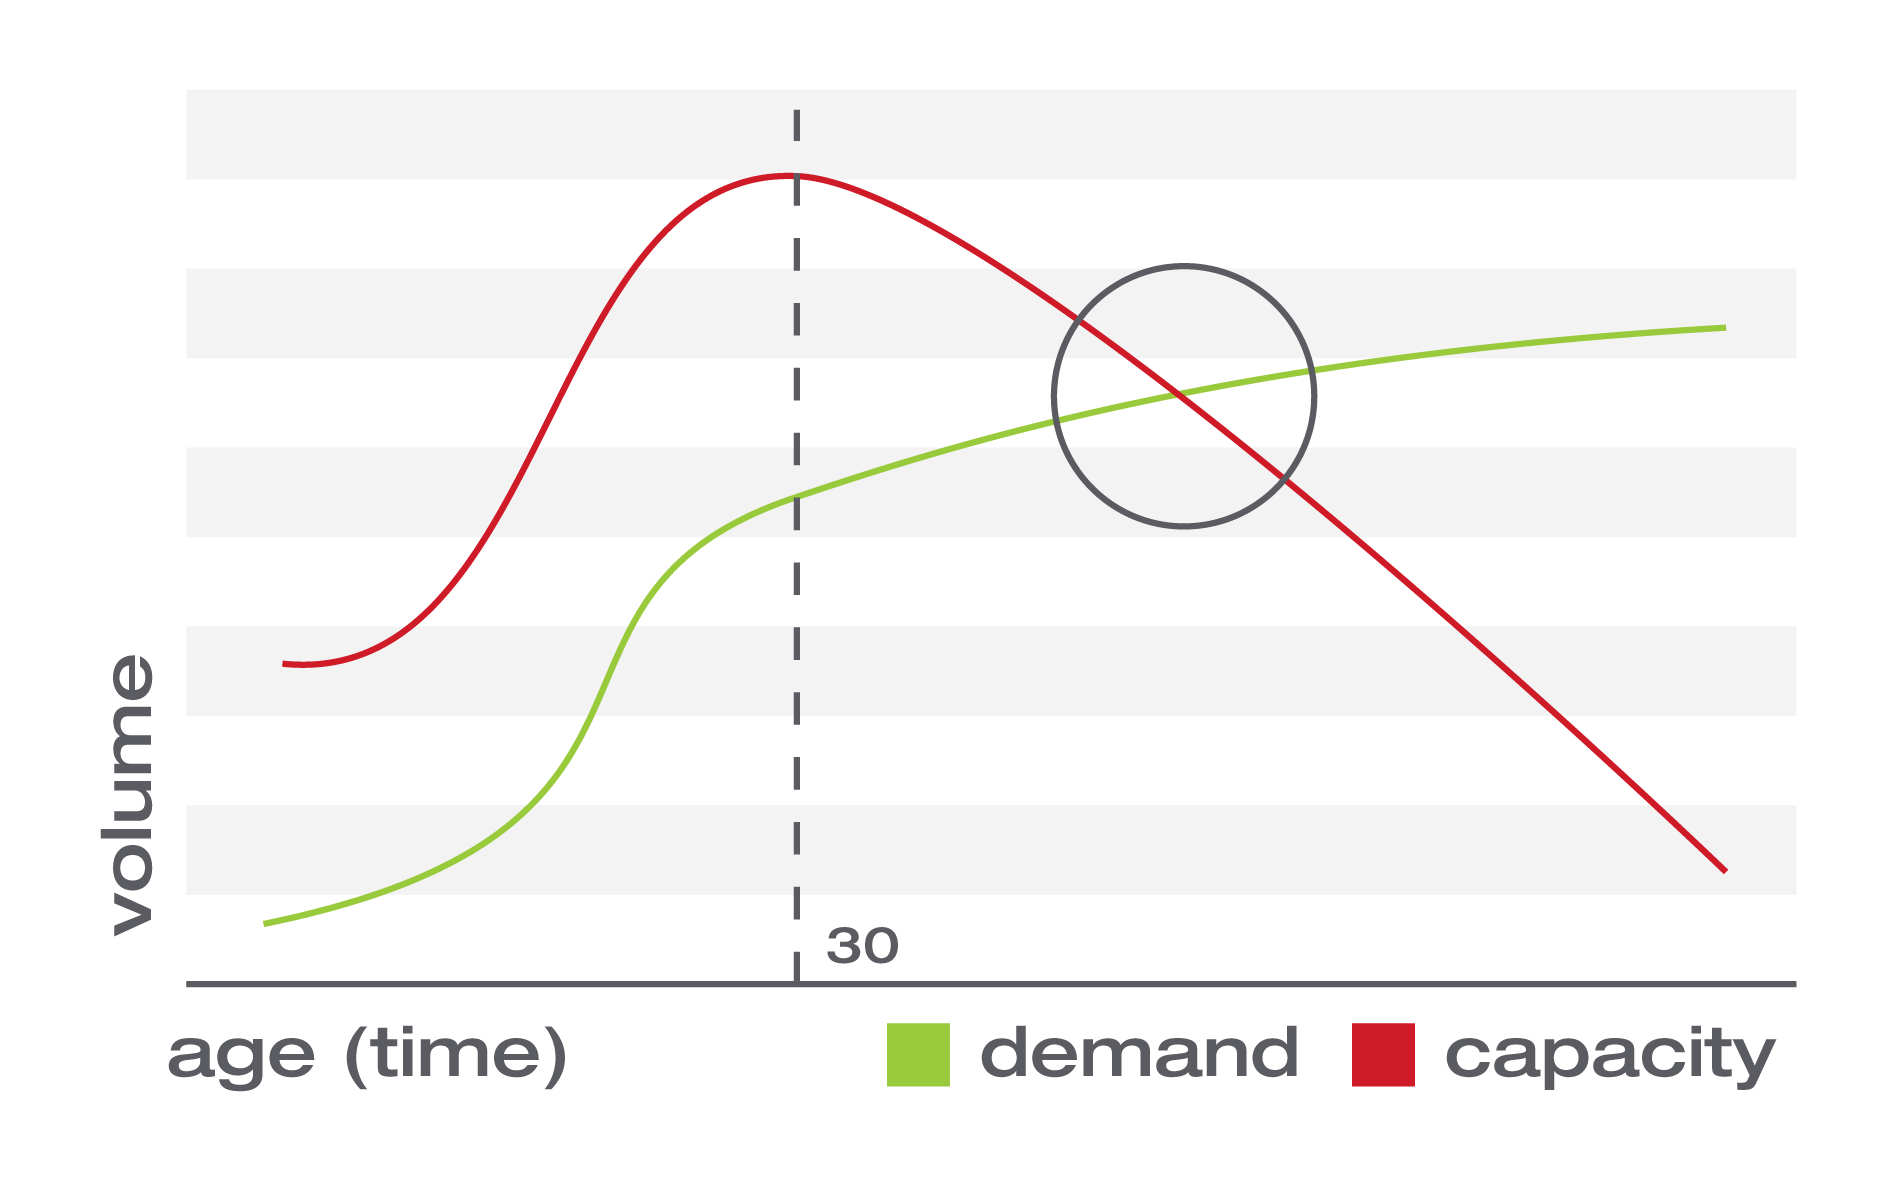 demand vs capacity curve